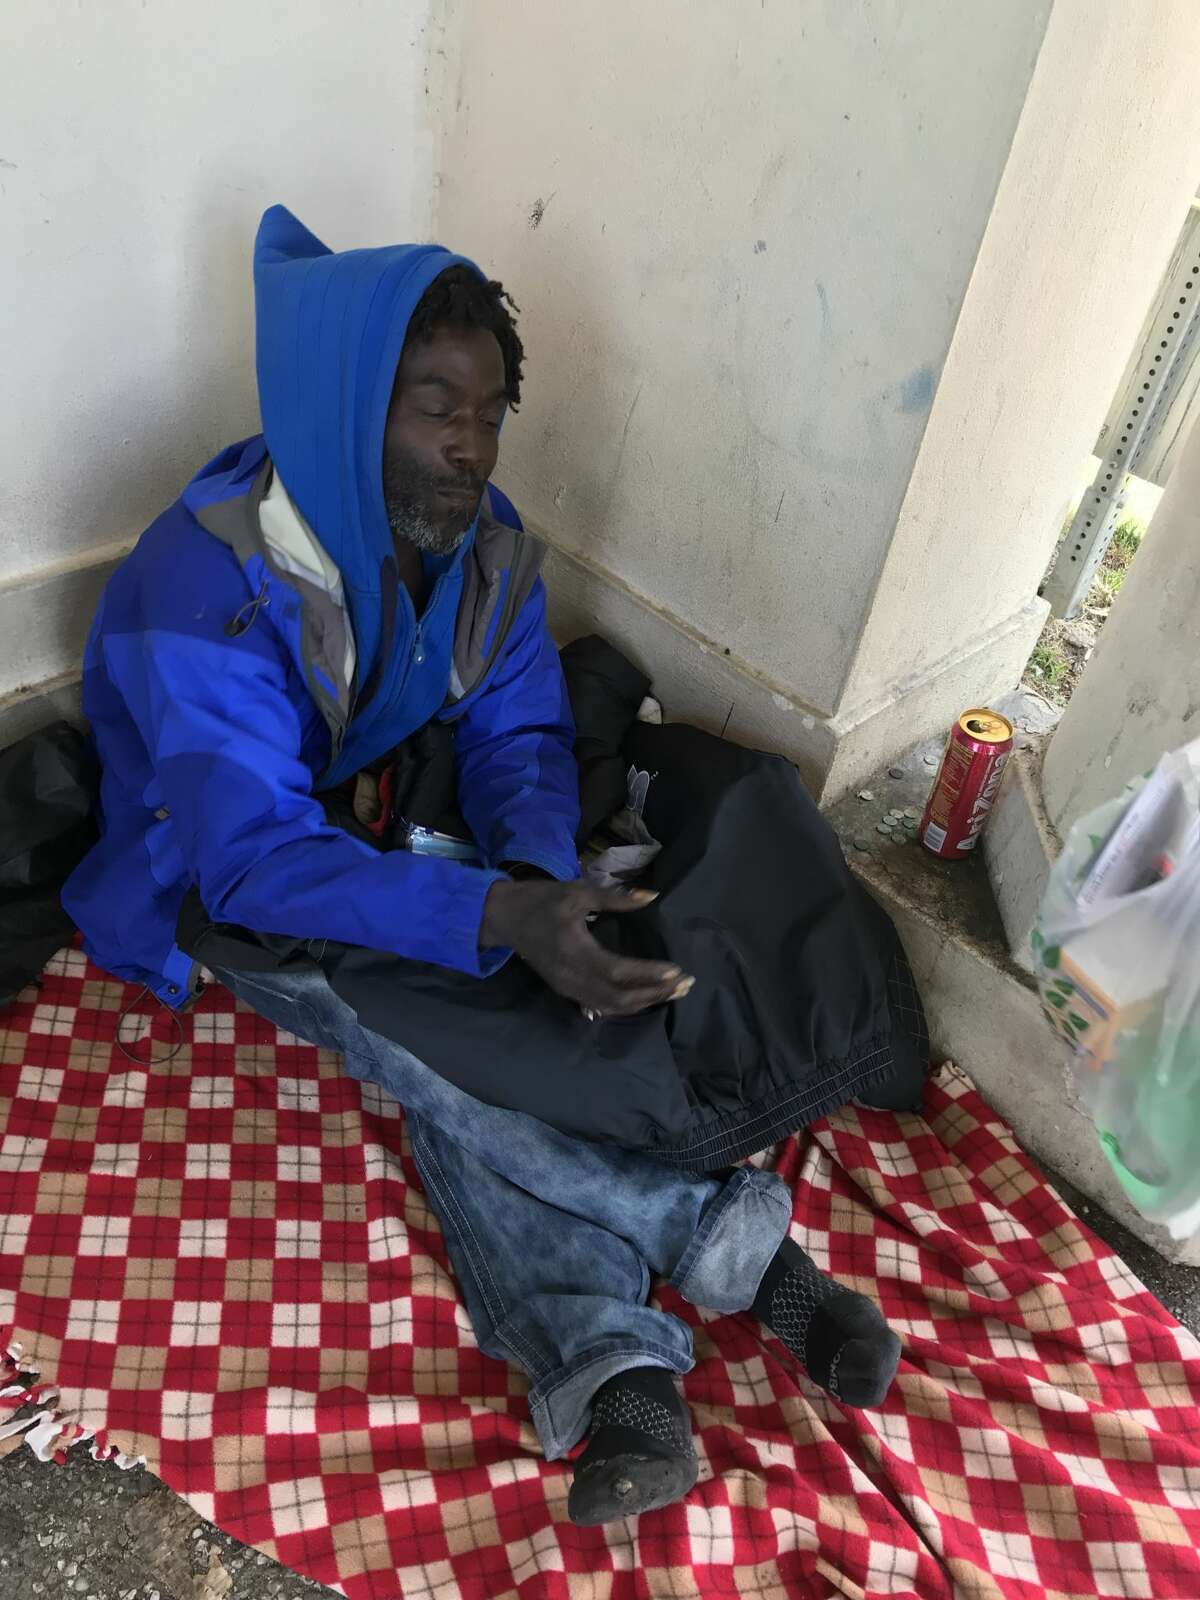 A homeless Oakland man named Drew is receiving assistance from locals after a video showed another man throwing Drew's belongings into Lake Merritt.